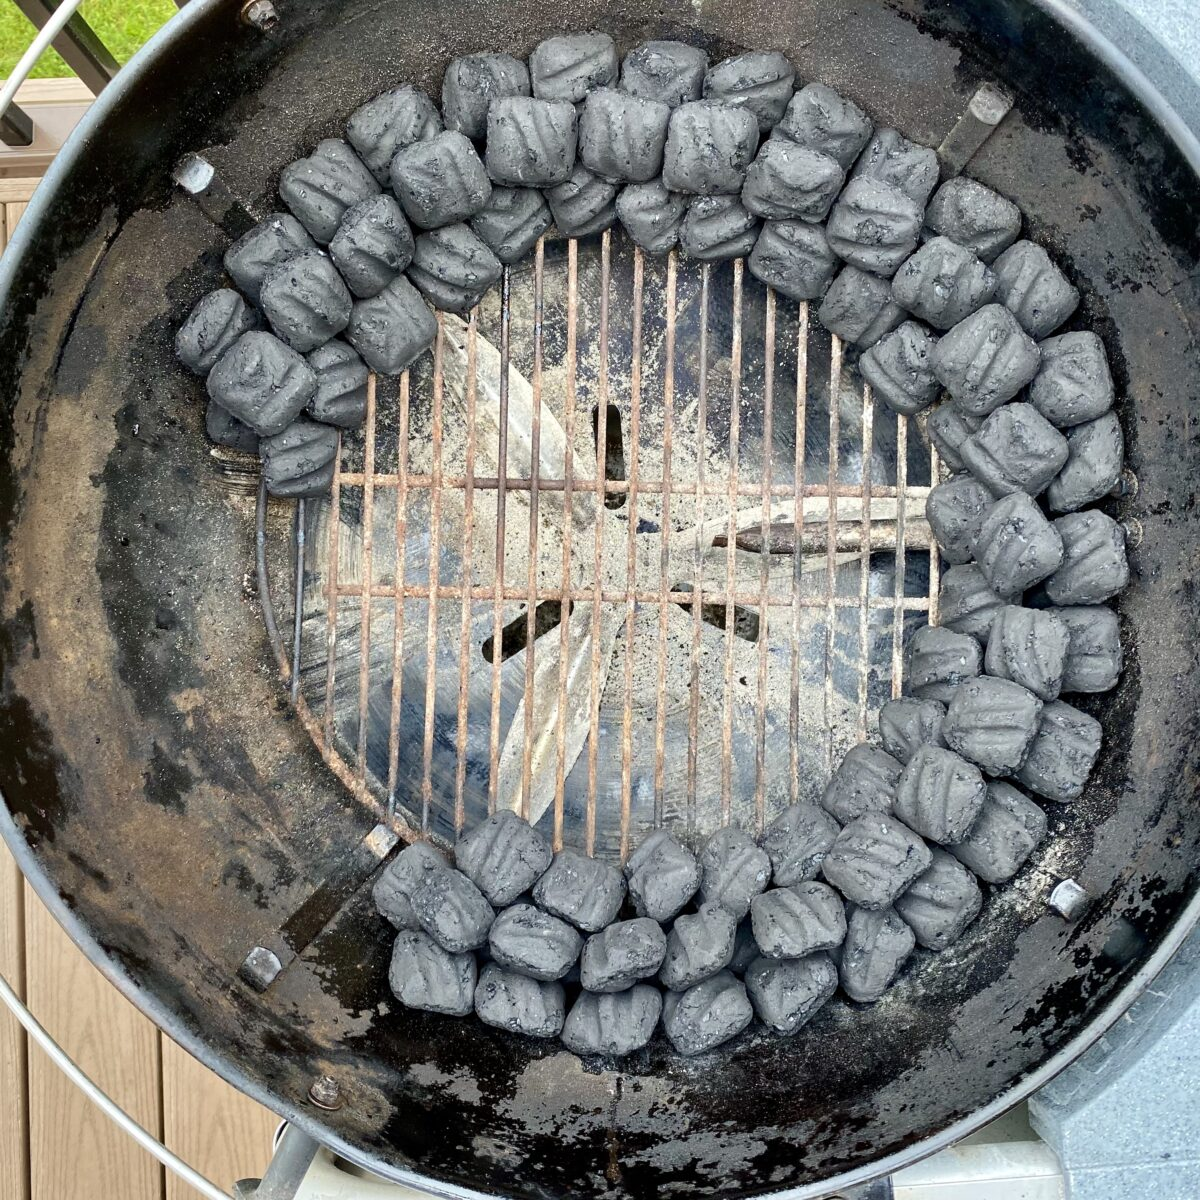 Overhead view clearly showing the charcoal snake coal set up around the charcoal chamber